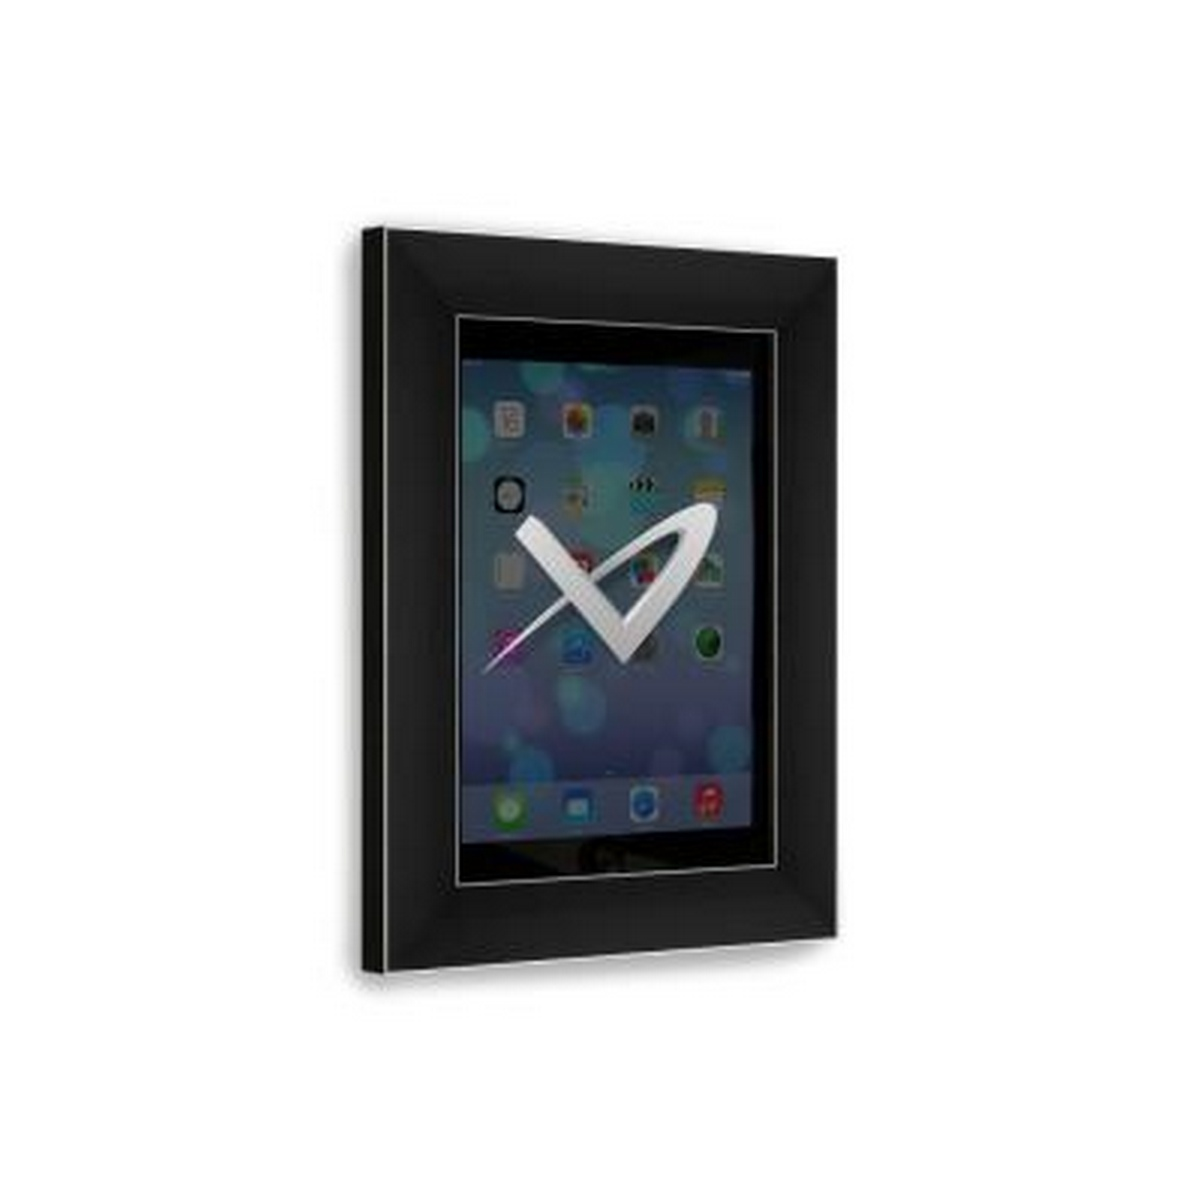 Vidabox Matt Black Ipad Air Wall Mount